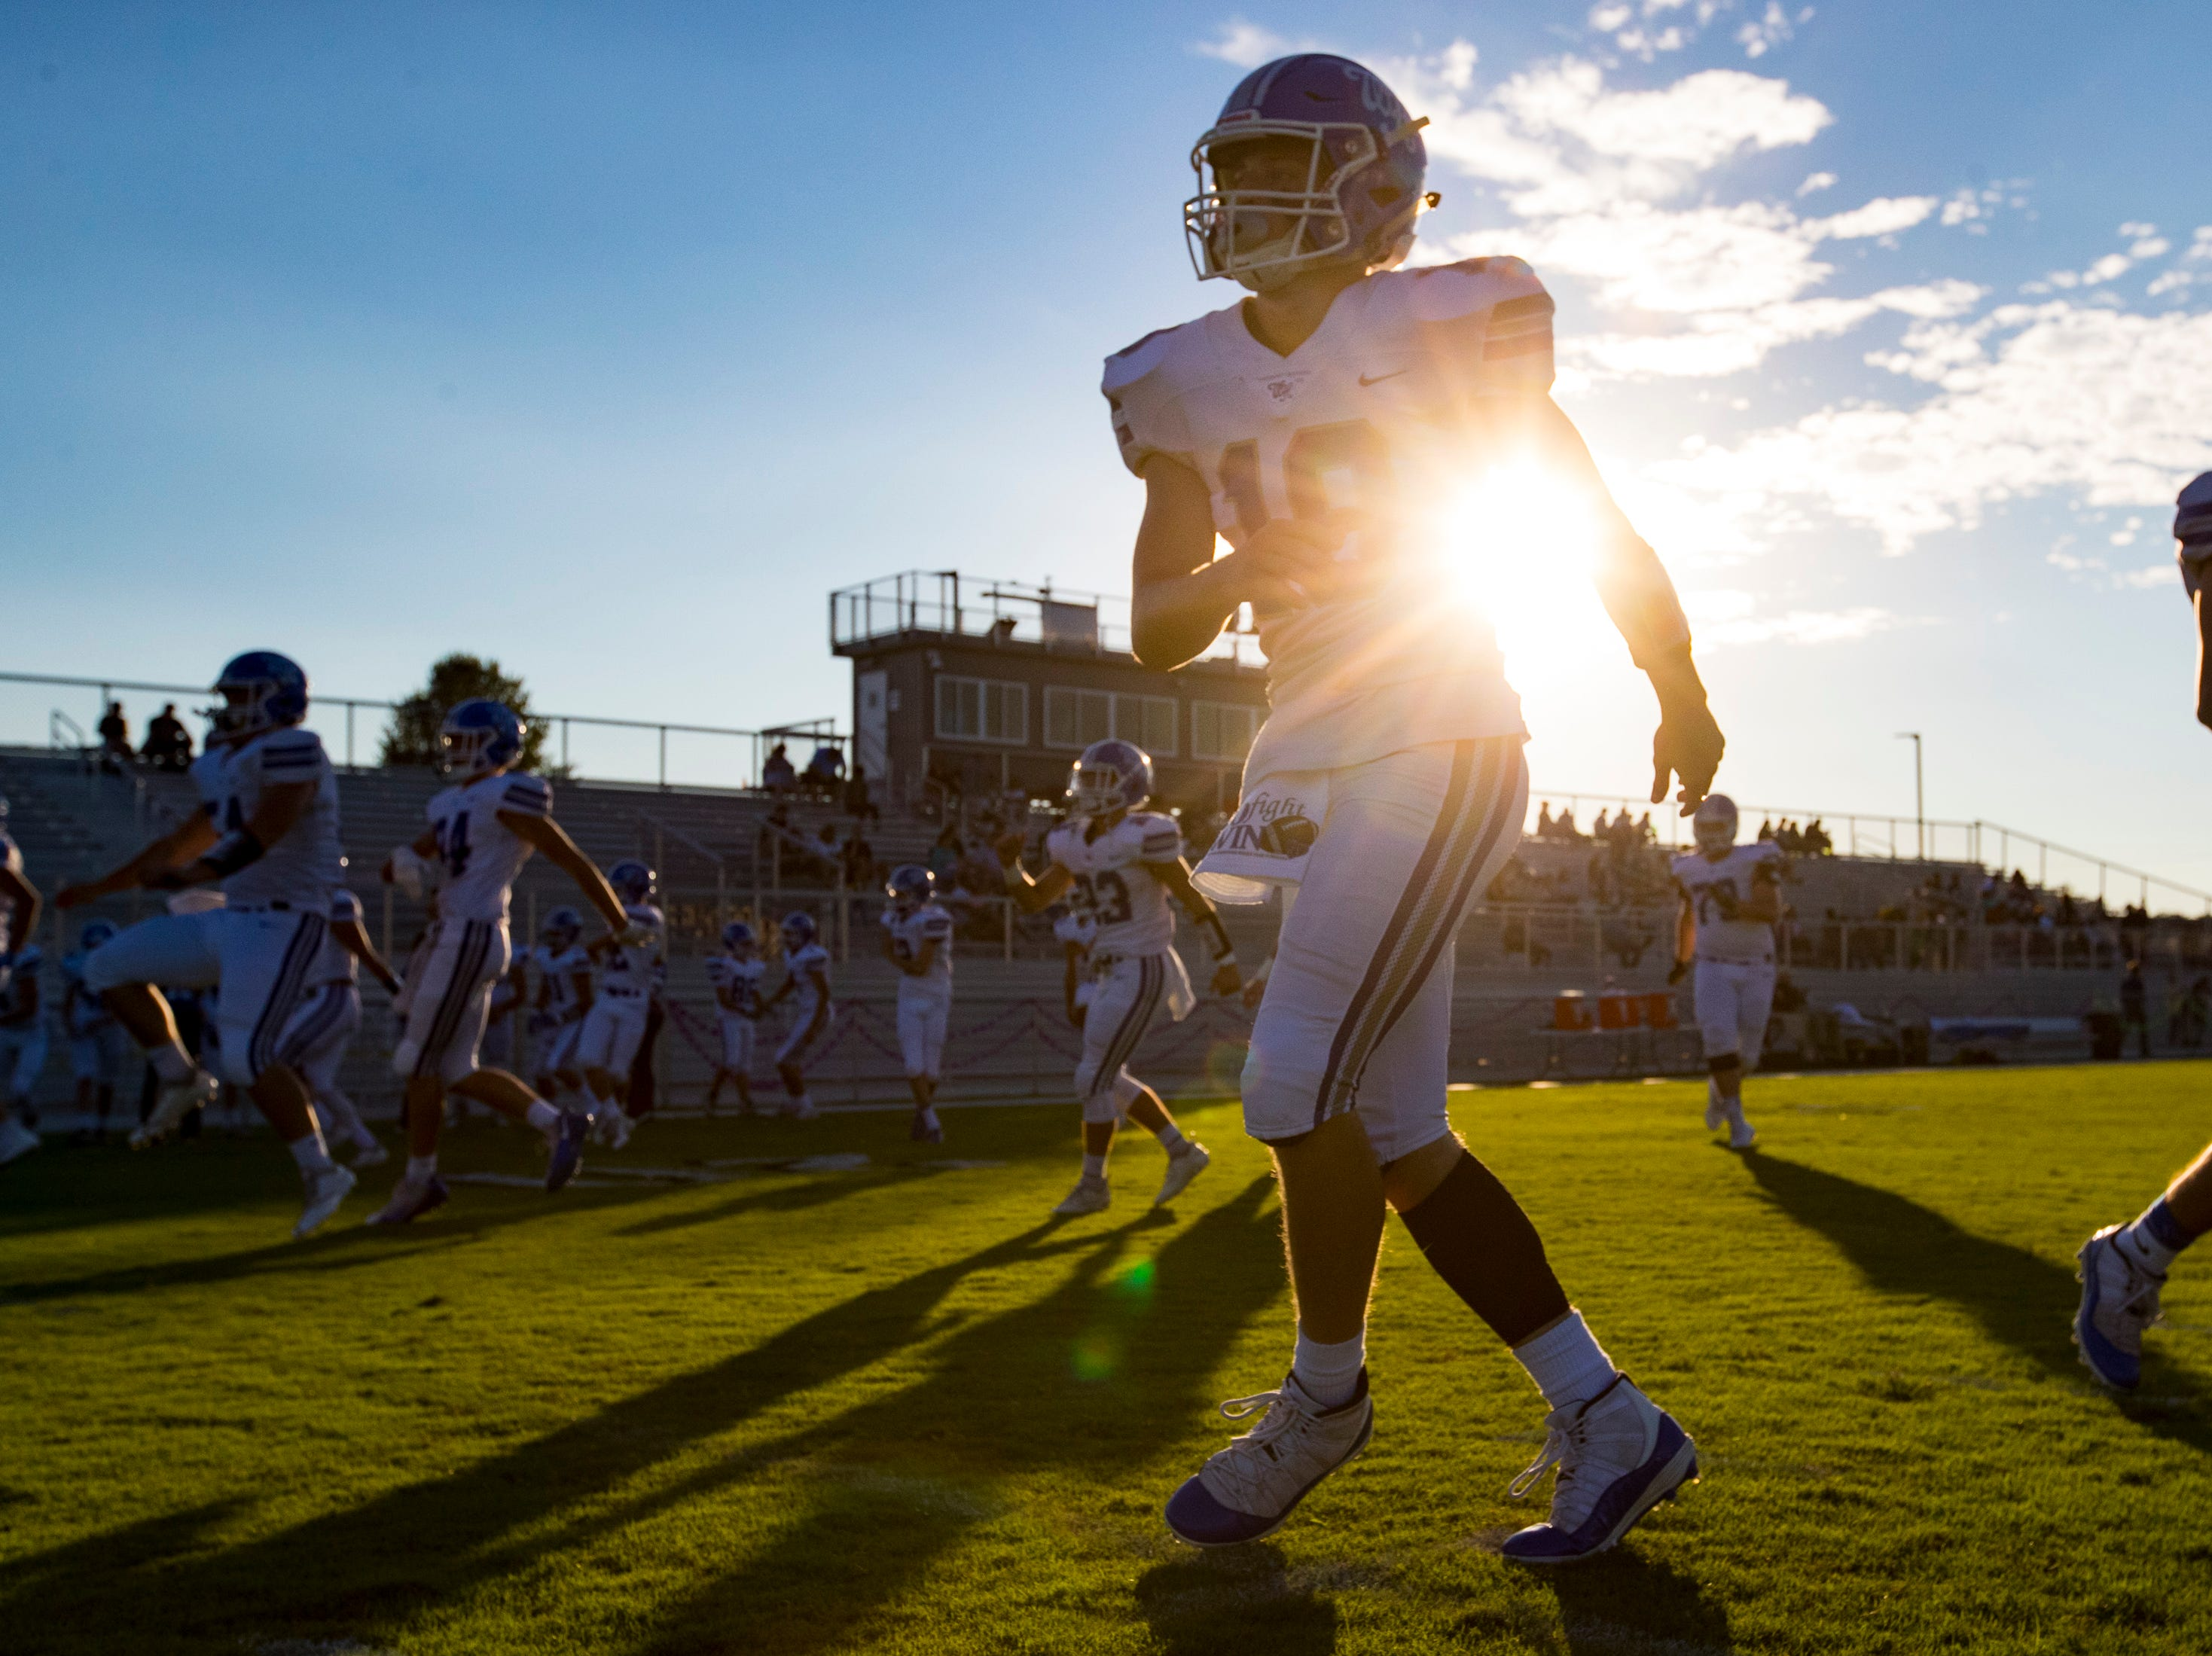 White House's Cameron Casanova (18) warms up with his teammates before Springfield's game against White House at Springfield High School in Springfield on Friday, Sept. 14, 2018.